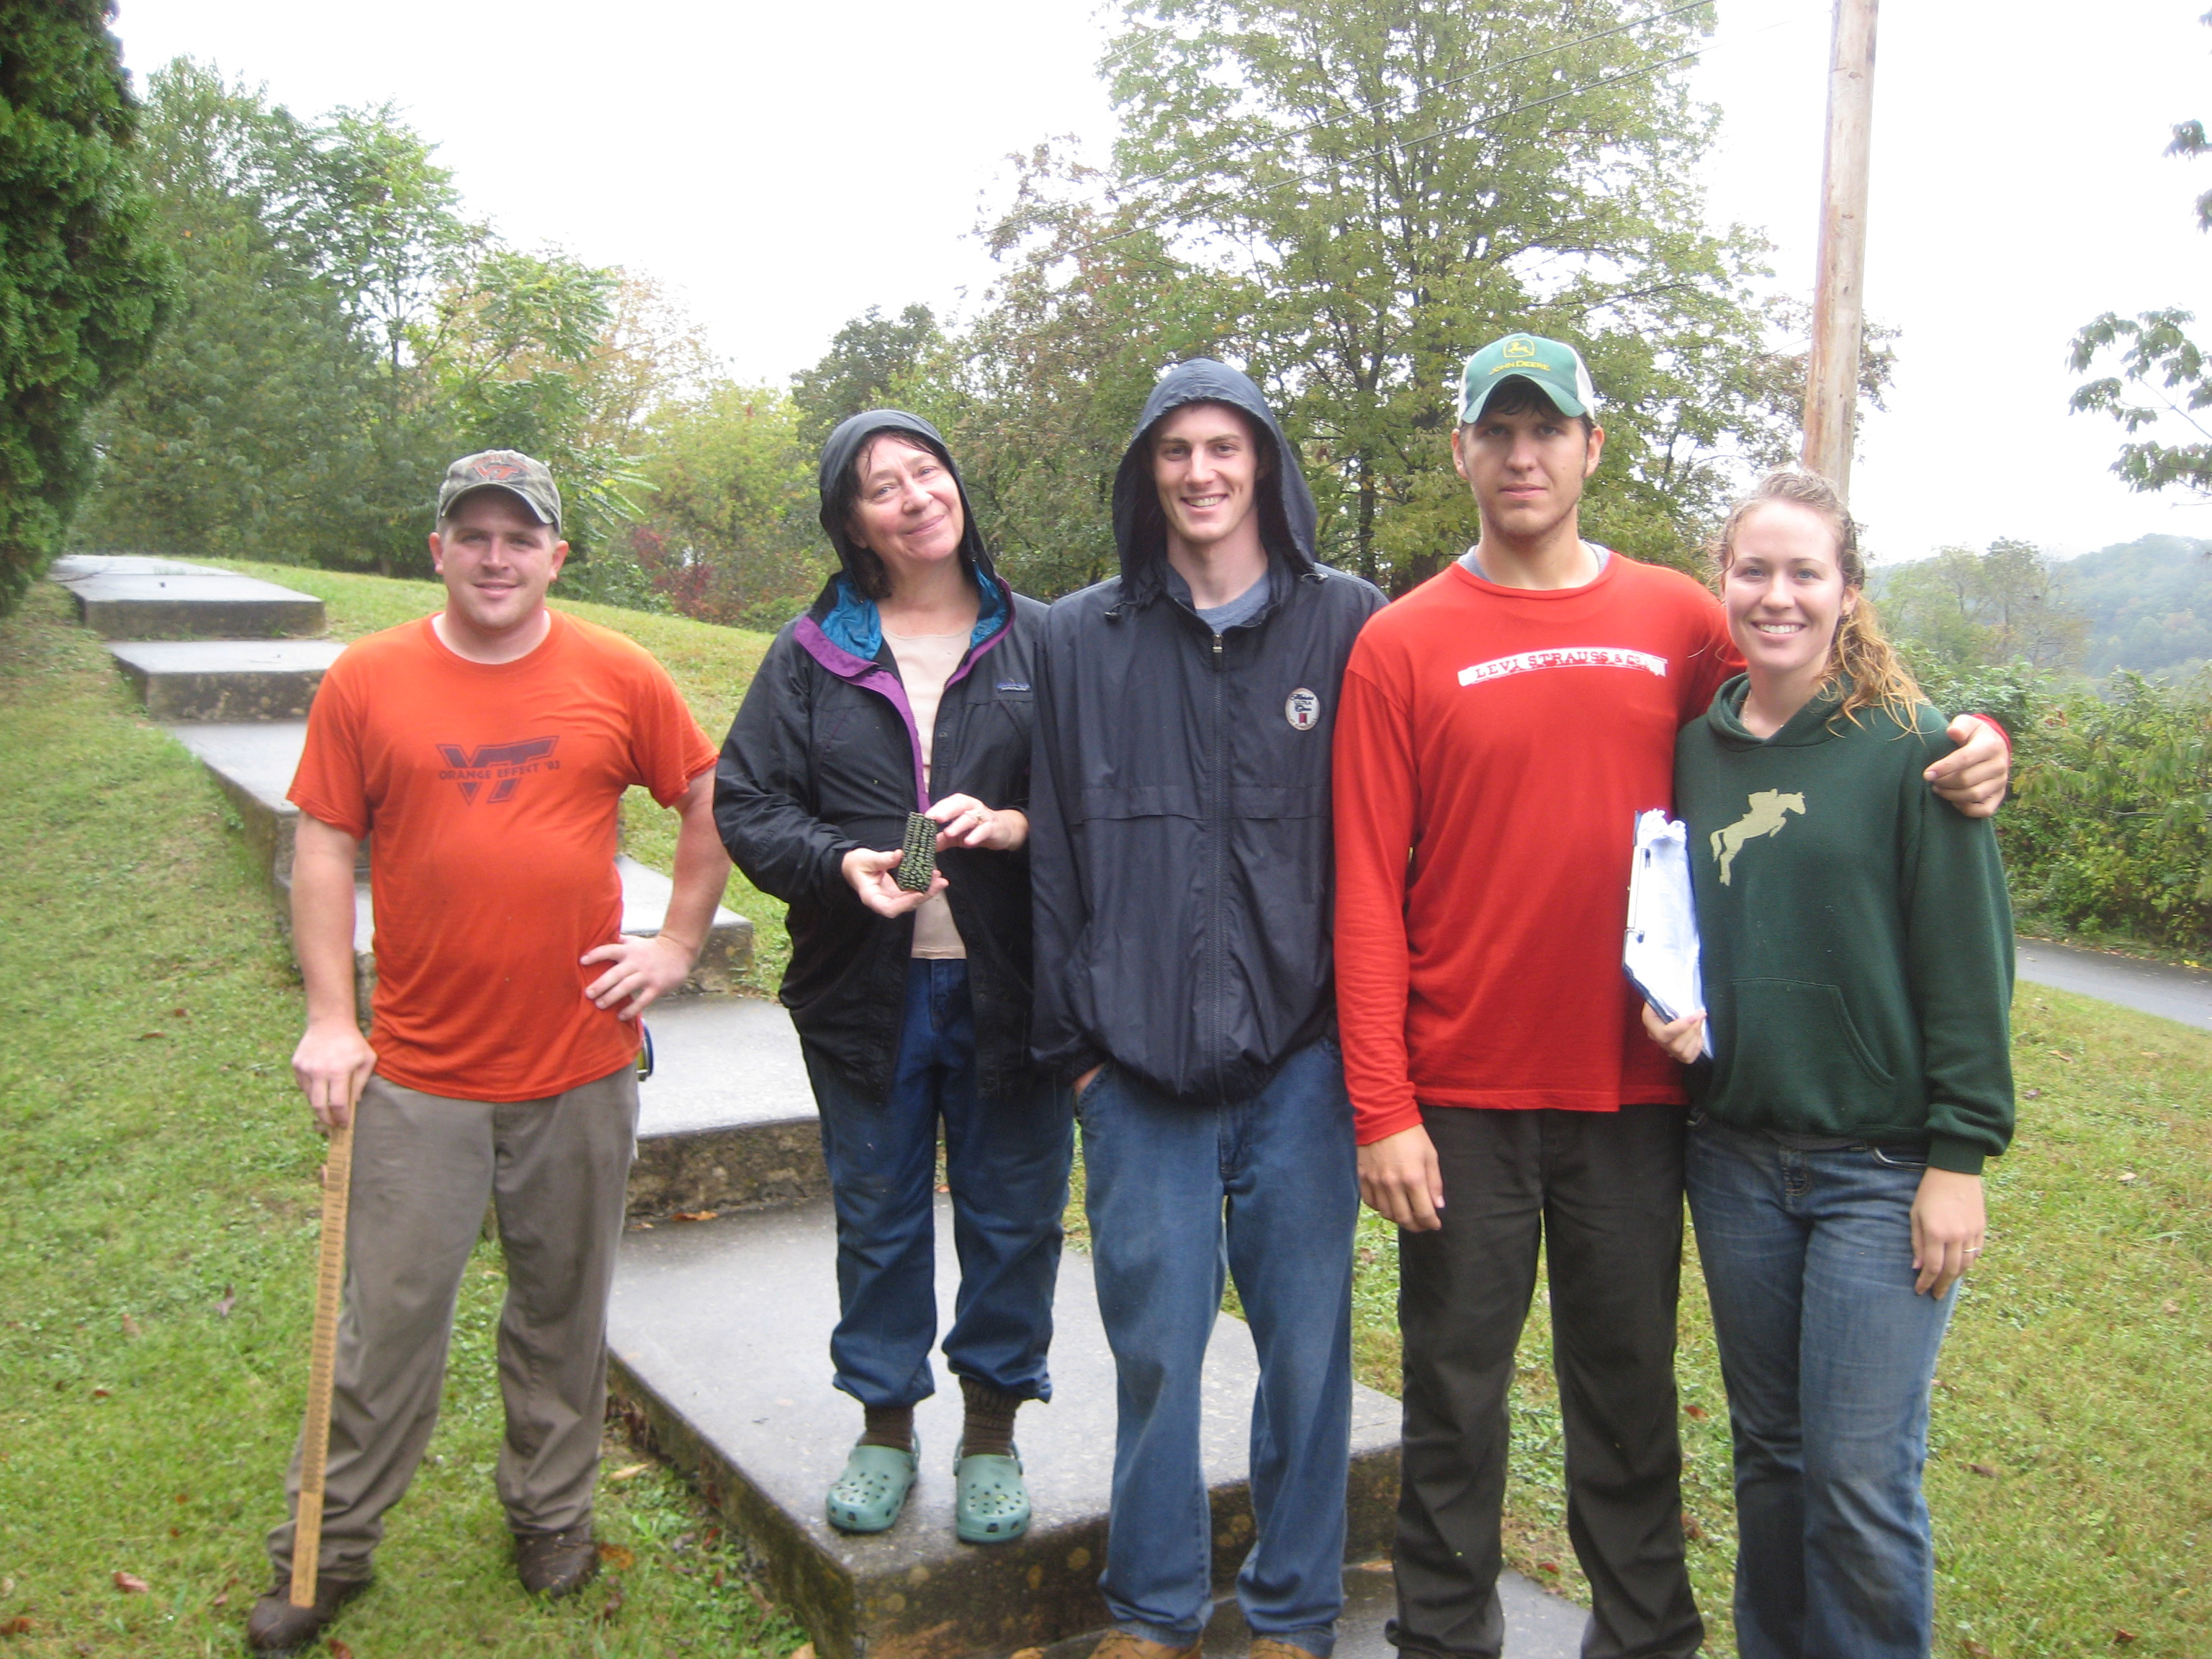 Landowner Betty Bailey (second from left) welcomed Virginia Tech service-learning students (left to right) J.B. Snelson, Chris Mernin, Spencer Blankenship, and Bonnie Lawrie on a rainy day in late September to identify possibilities for planting trees to reduce erosion along stream banks on her property.